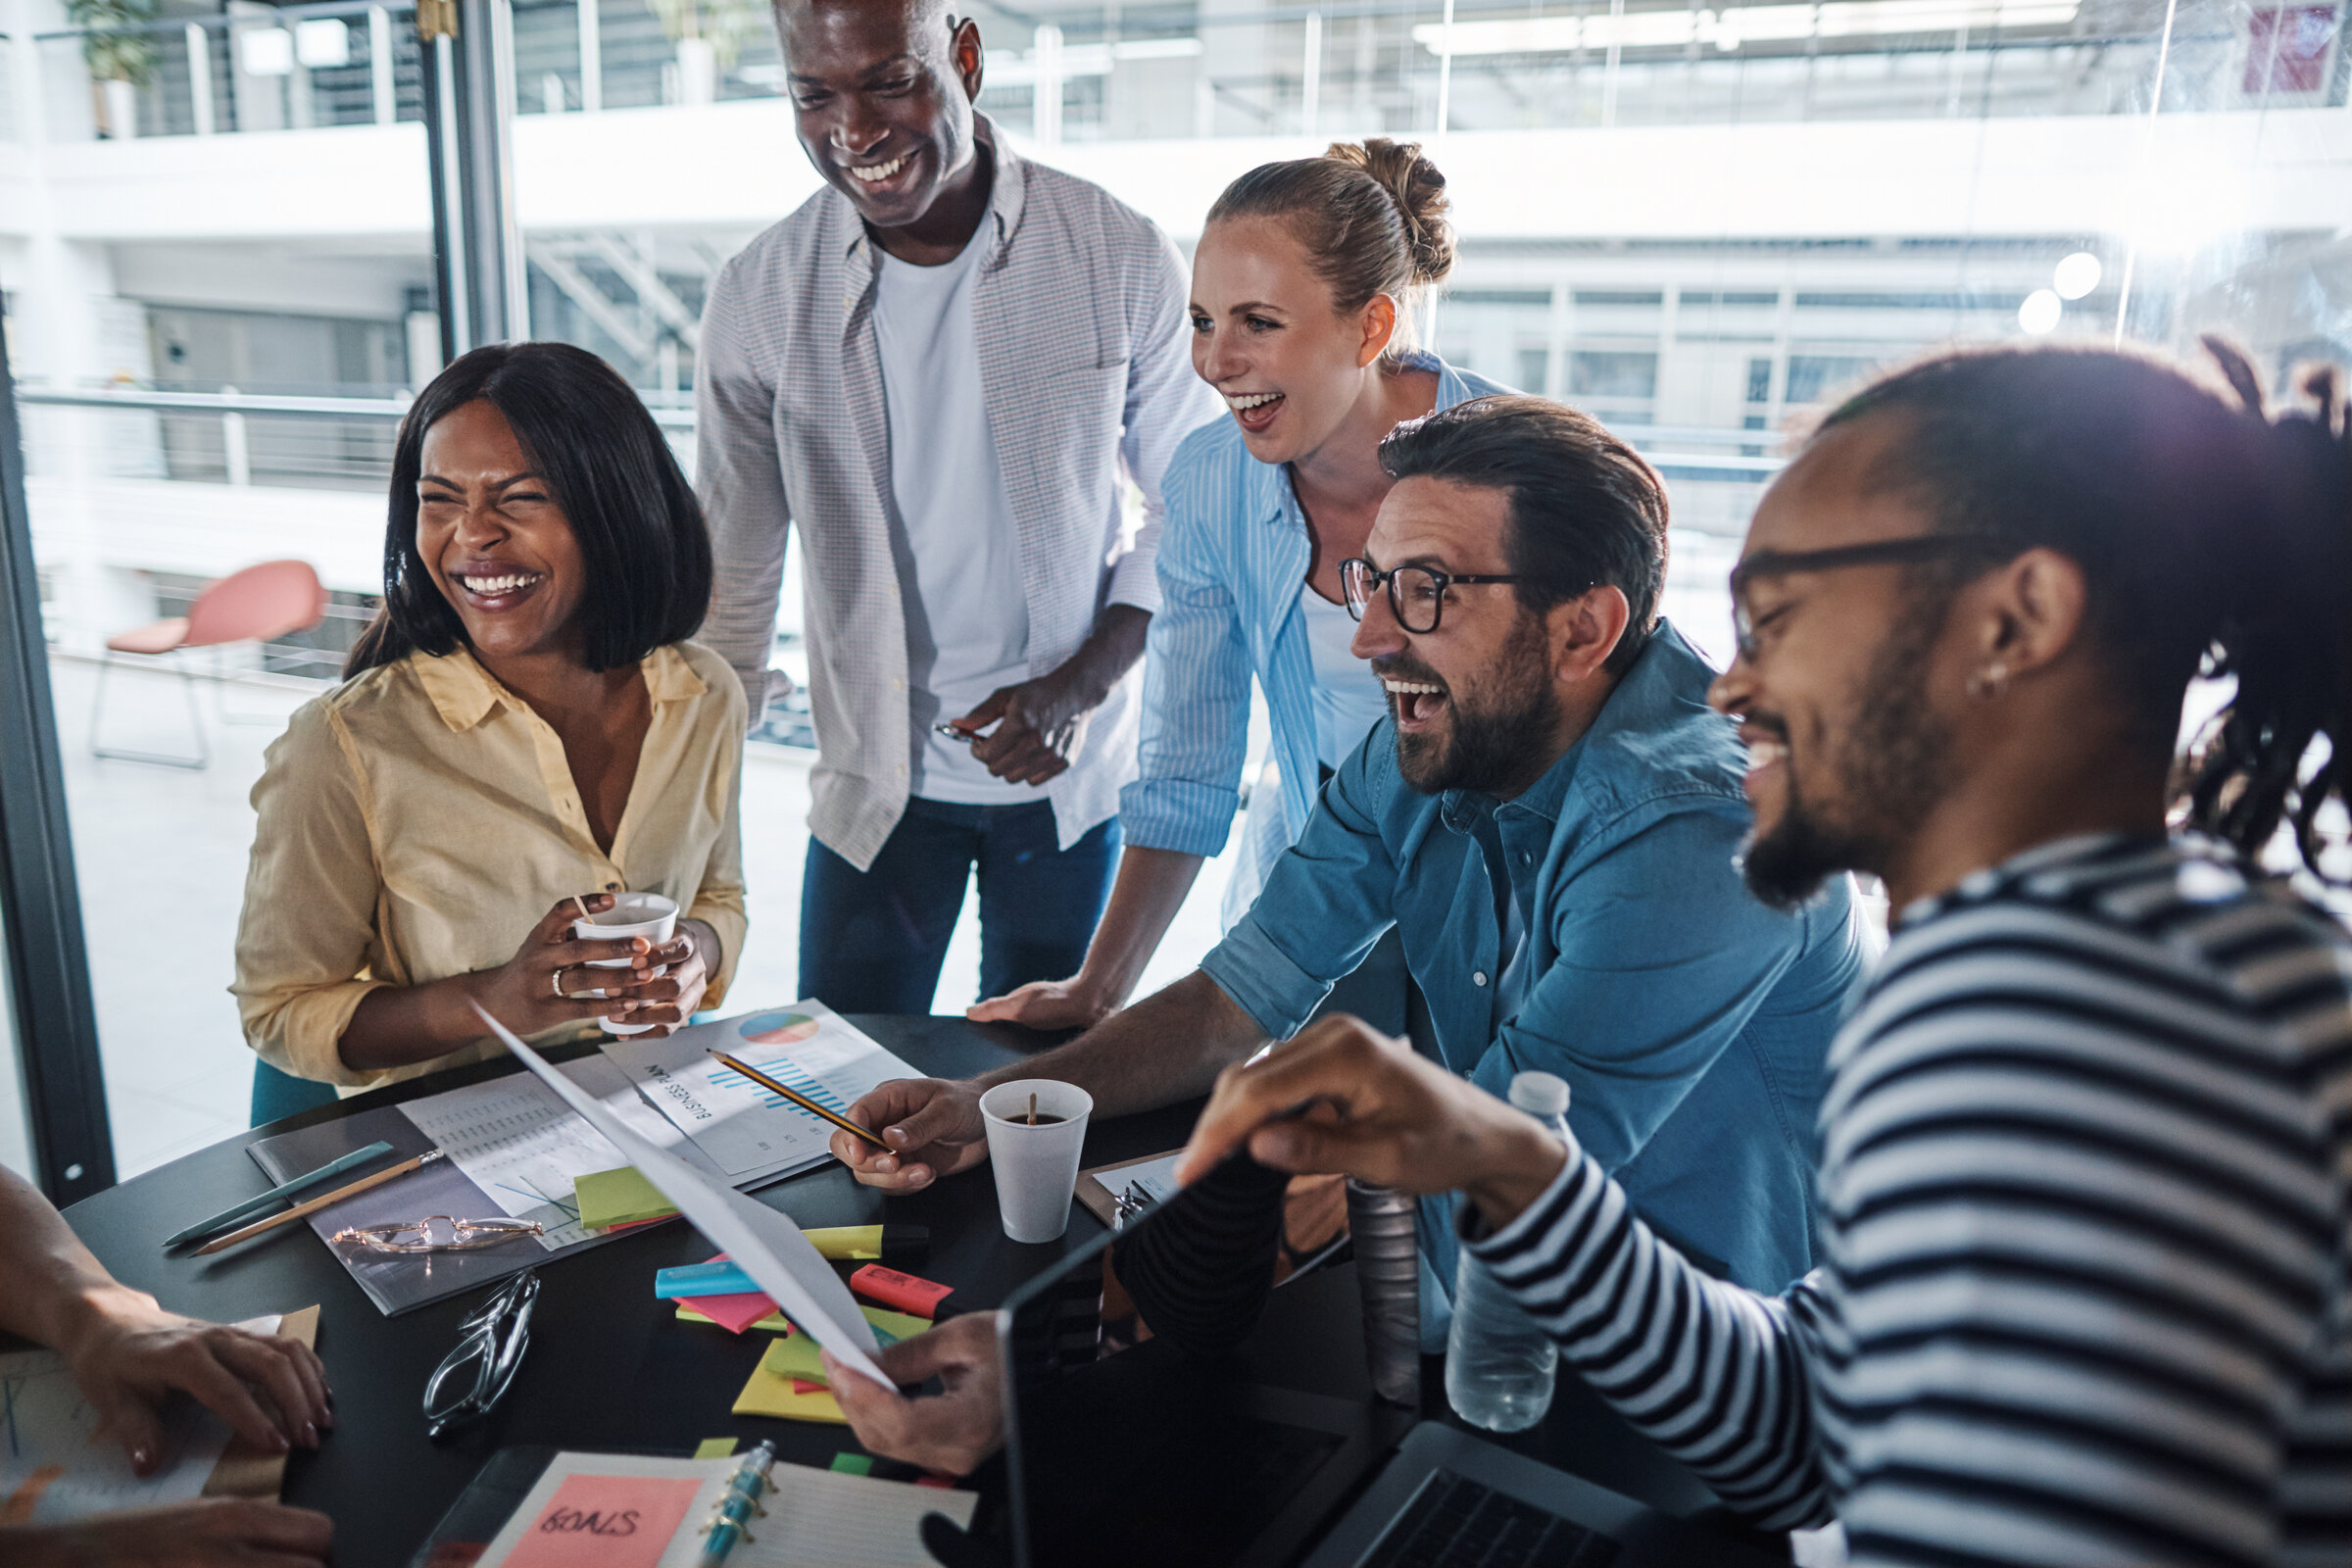 Laughing group of diverse businesspeople having an office meeting together